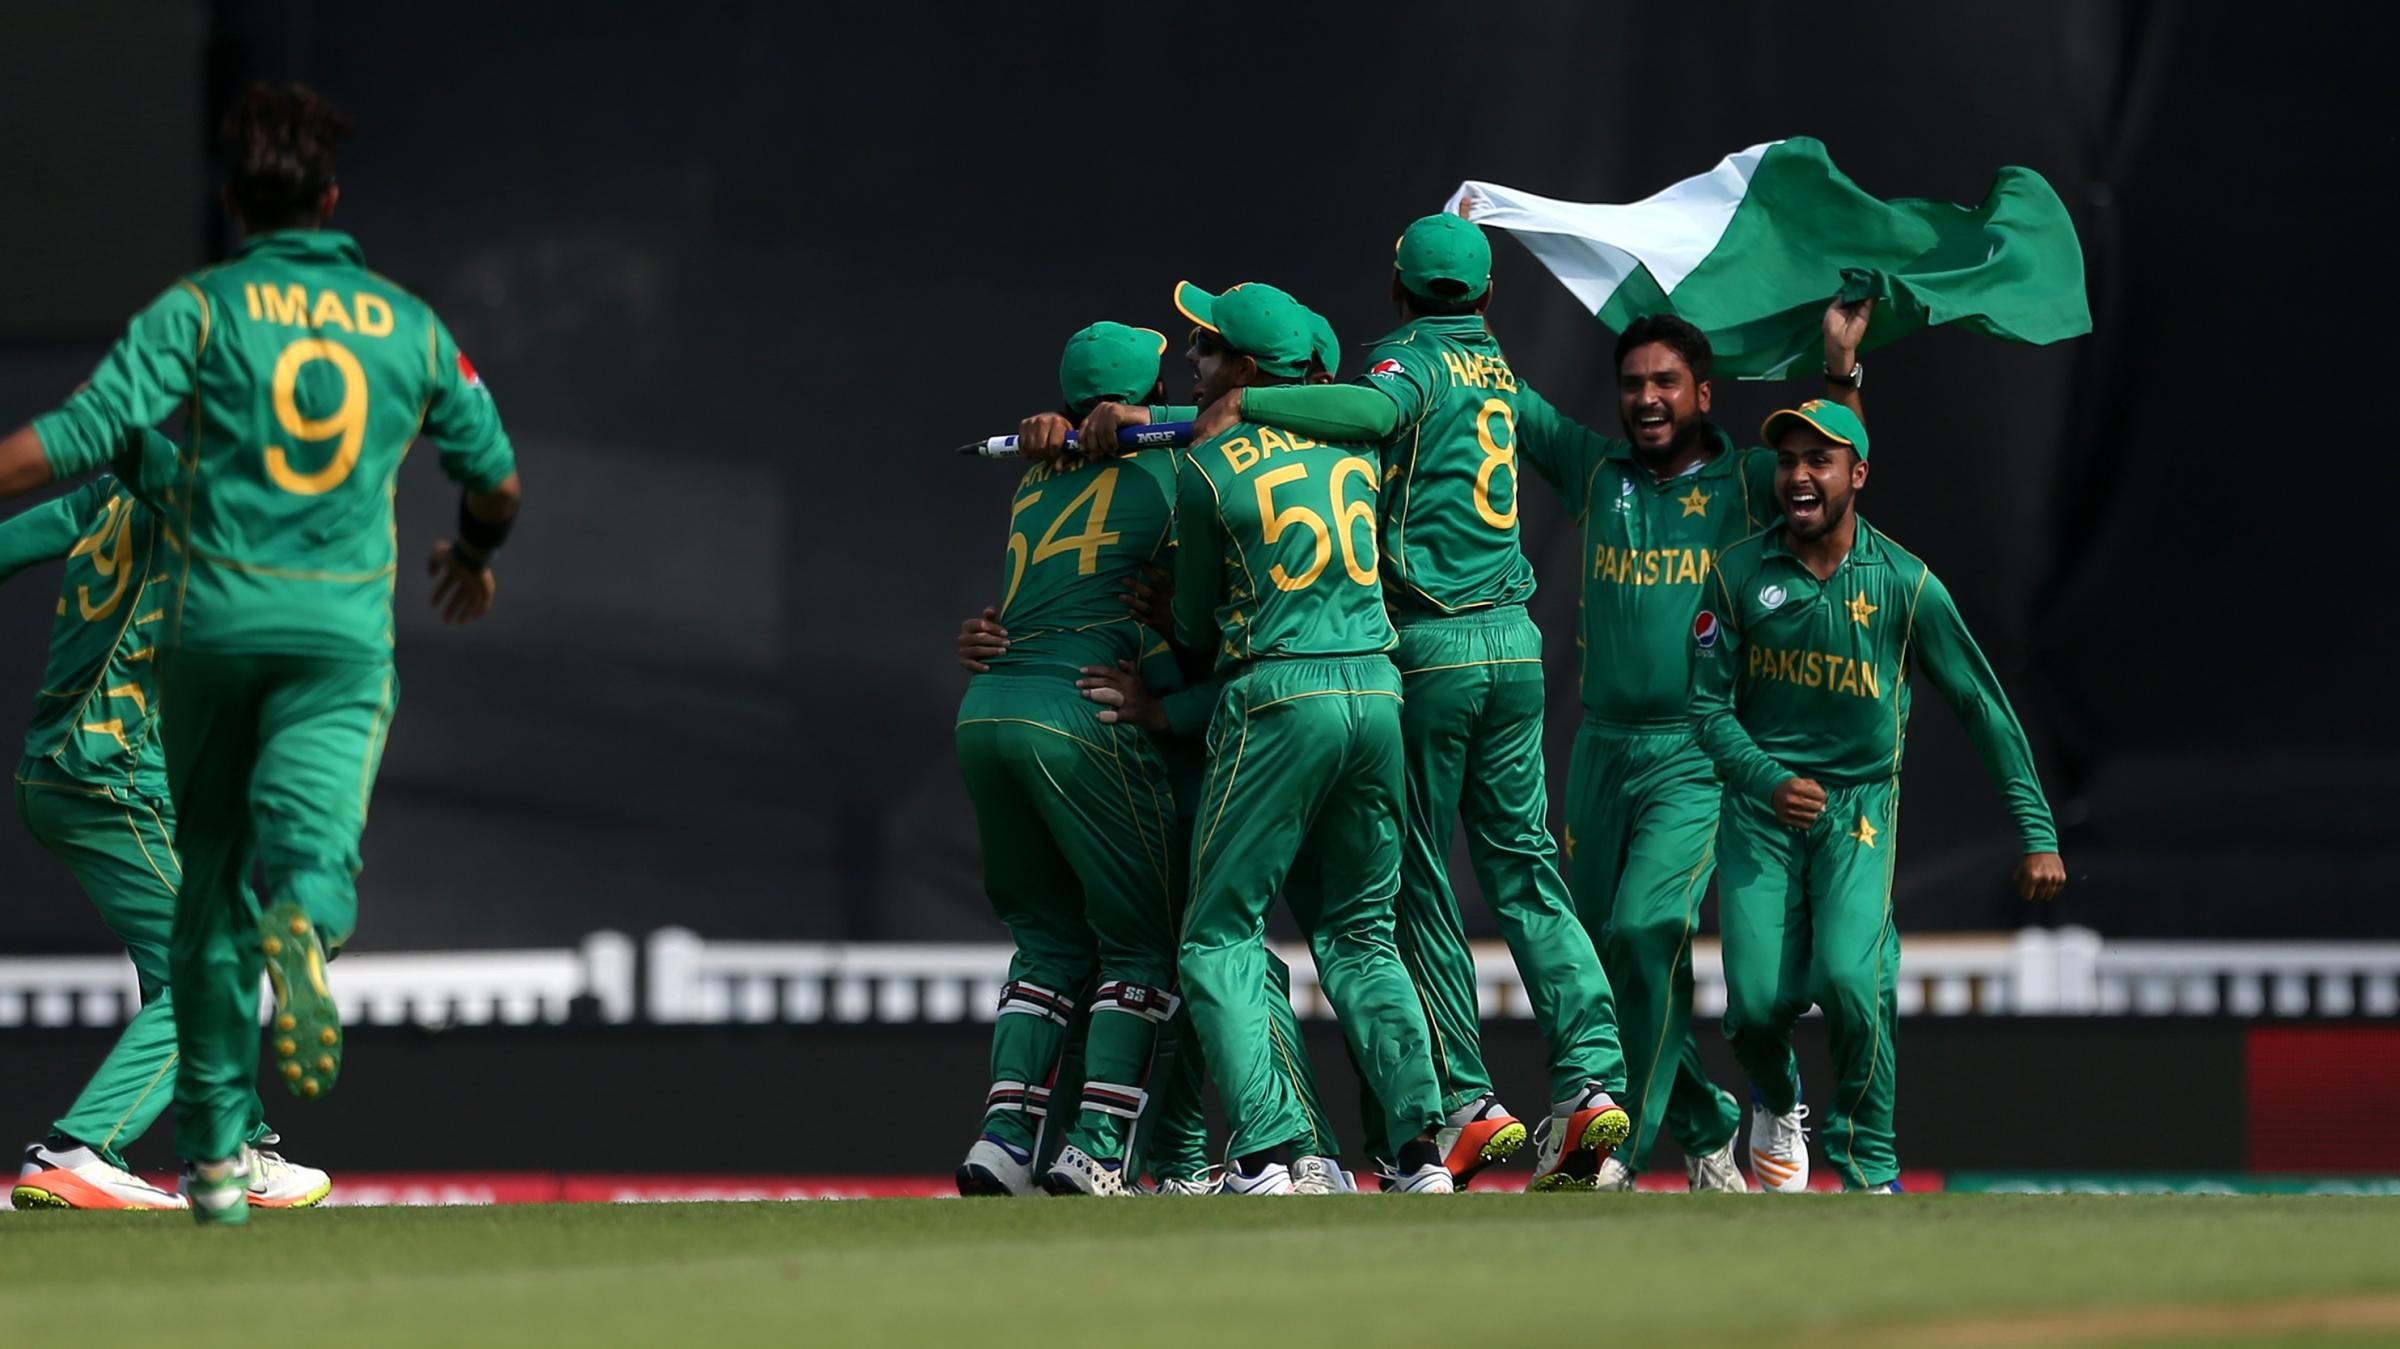 Pakistan stun defending champions India to win Champions Trophy